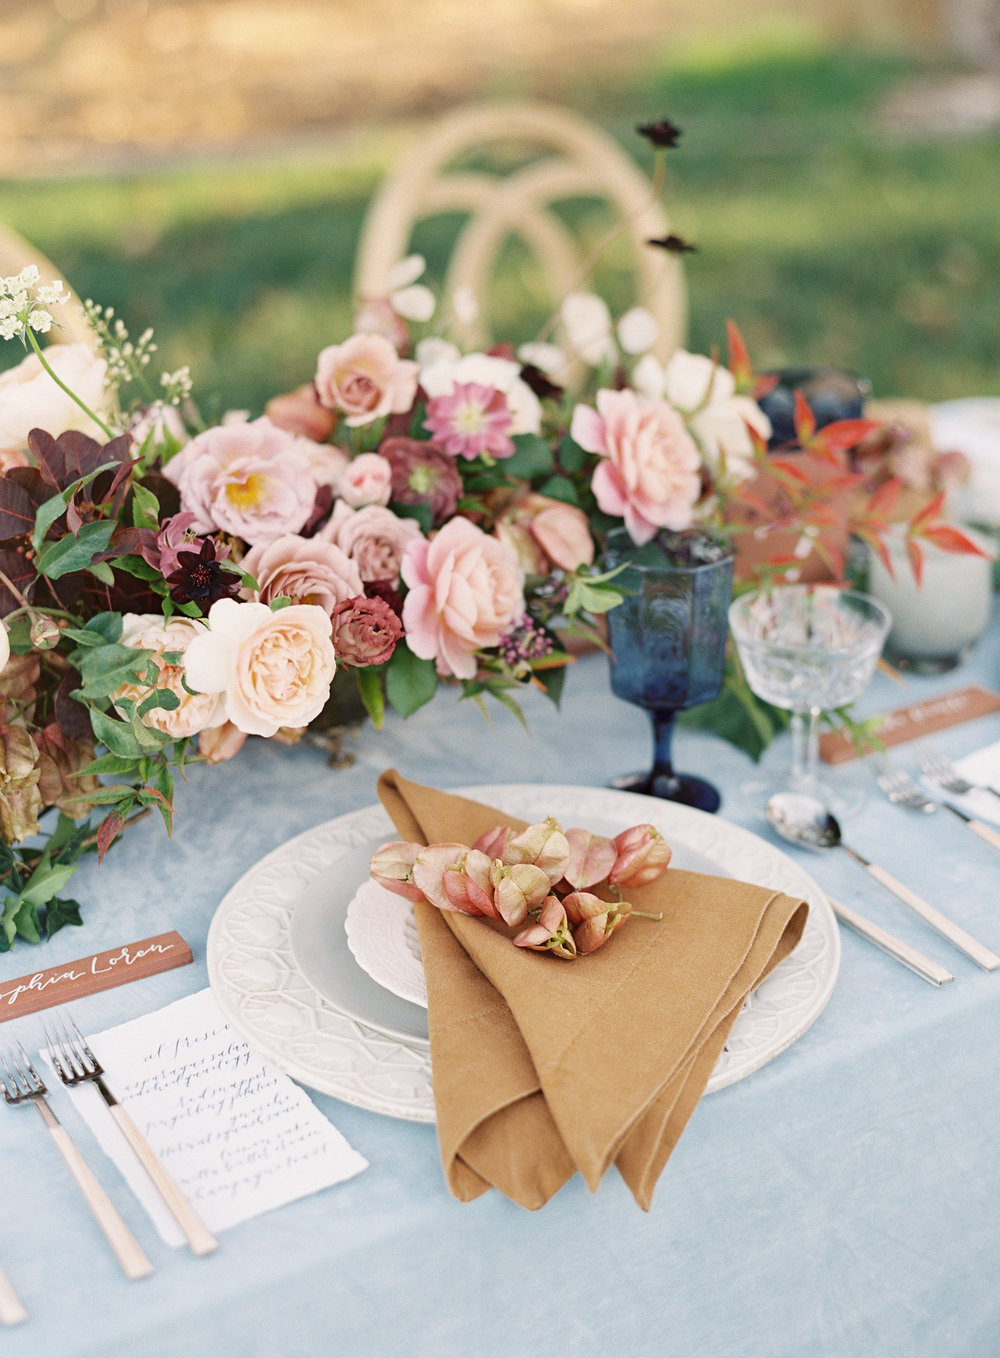 Lynette Boyle Photography | Showcase collaboration of Kaella Lynn Events, Amanda Vidmar Design, La Tavola Linen, Frances Lane